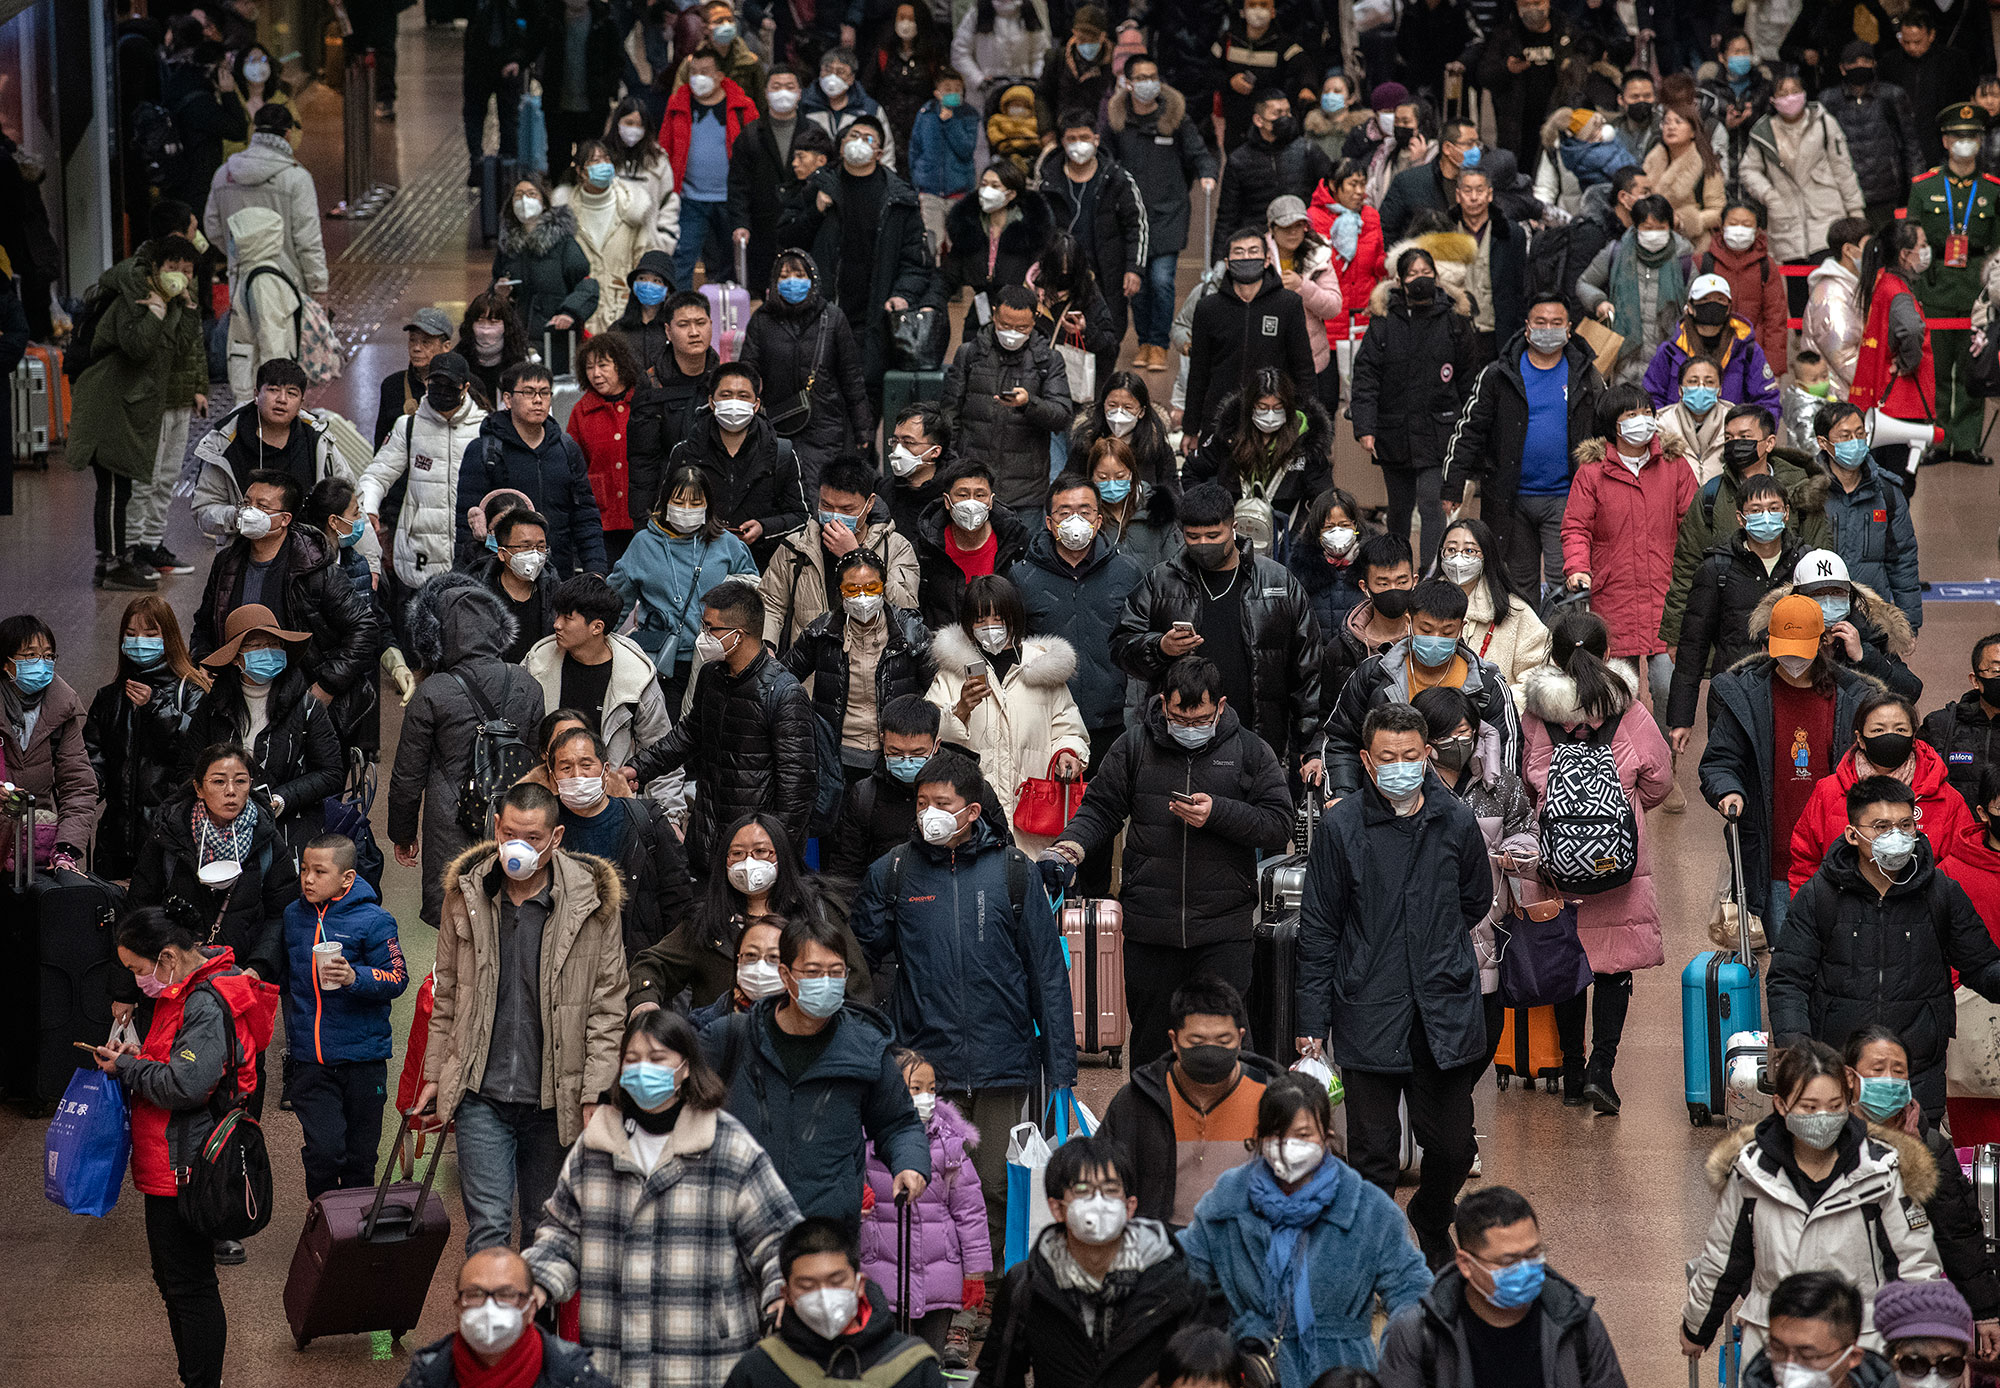 Chinese passengers, most wearing masks, prepare to board trains in Beijing on Thursday, January 23.